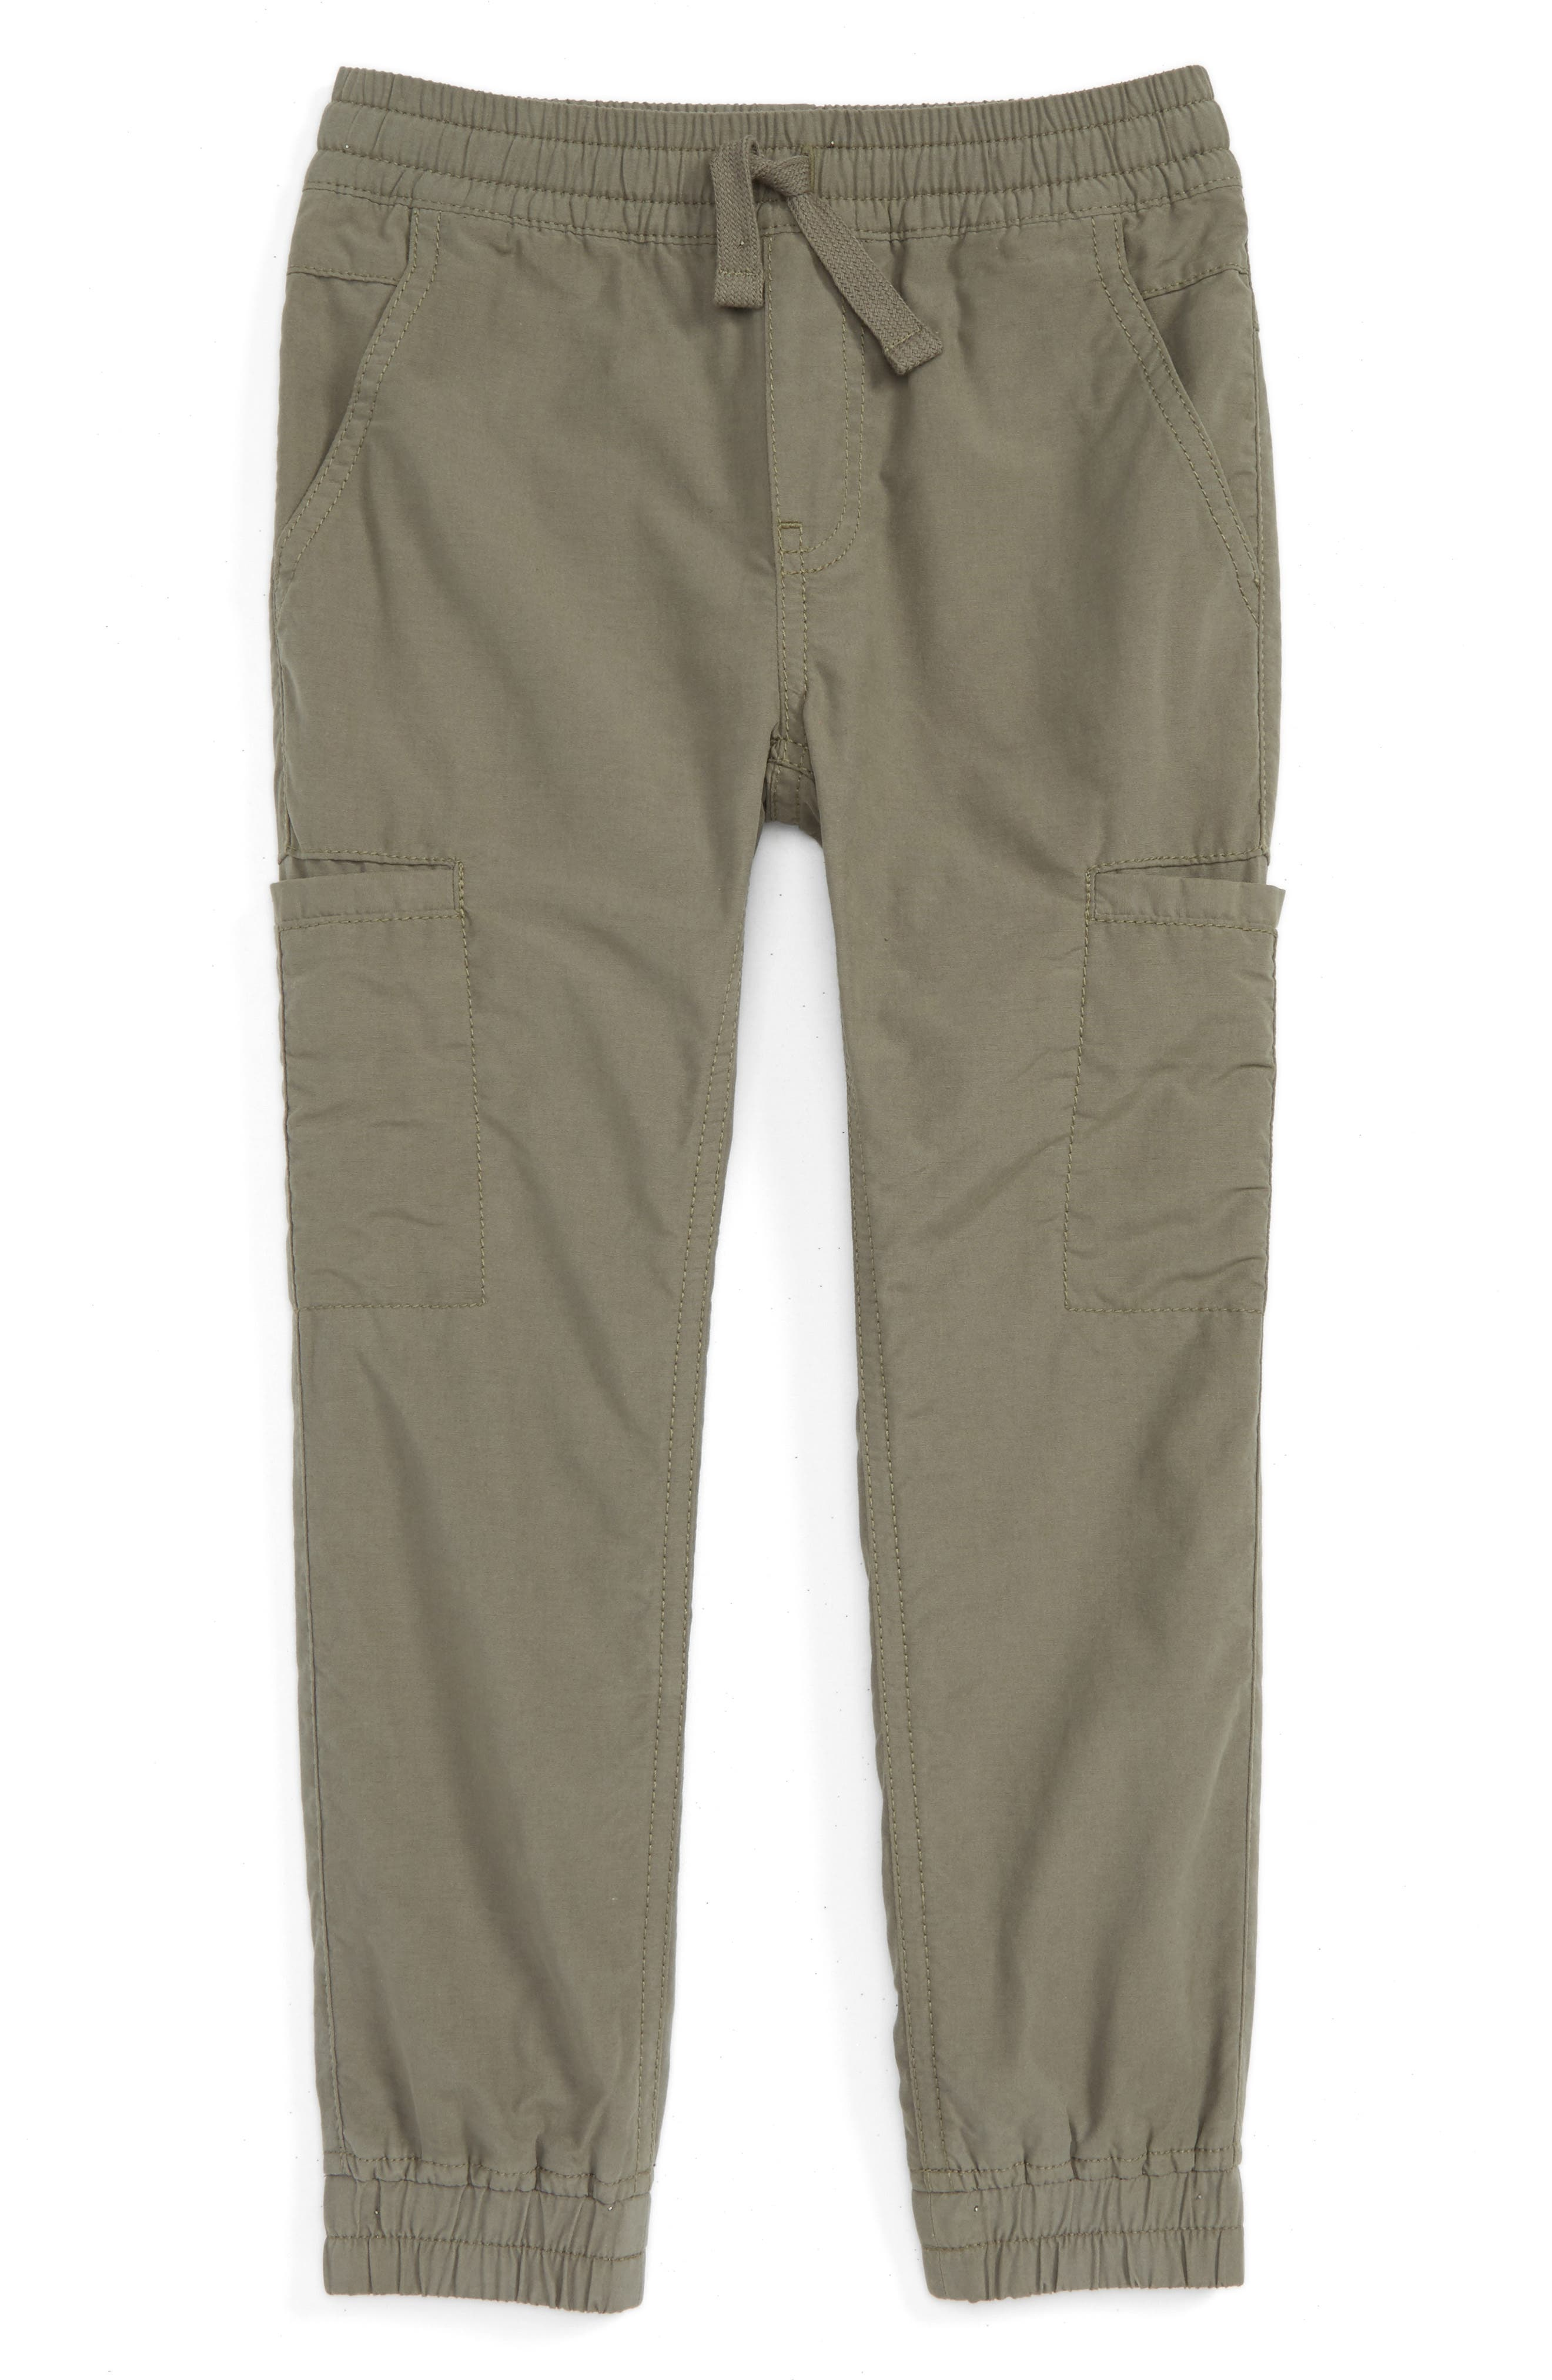 Tucker + Tate Lined Jogger Pants (Toddler Boys & Little Boys)